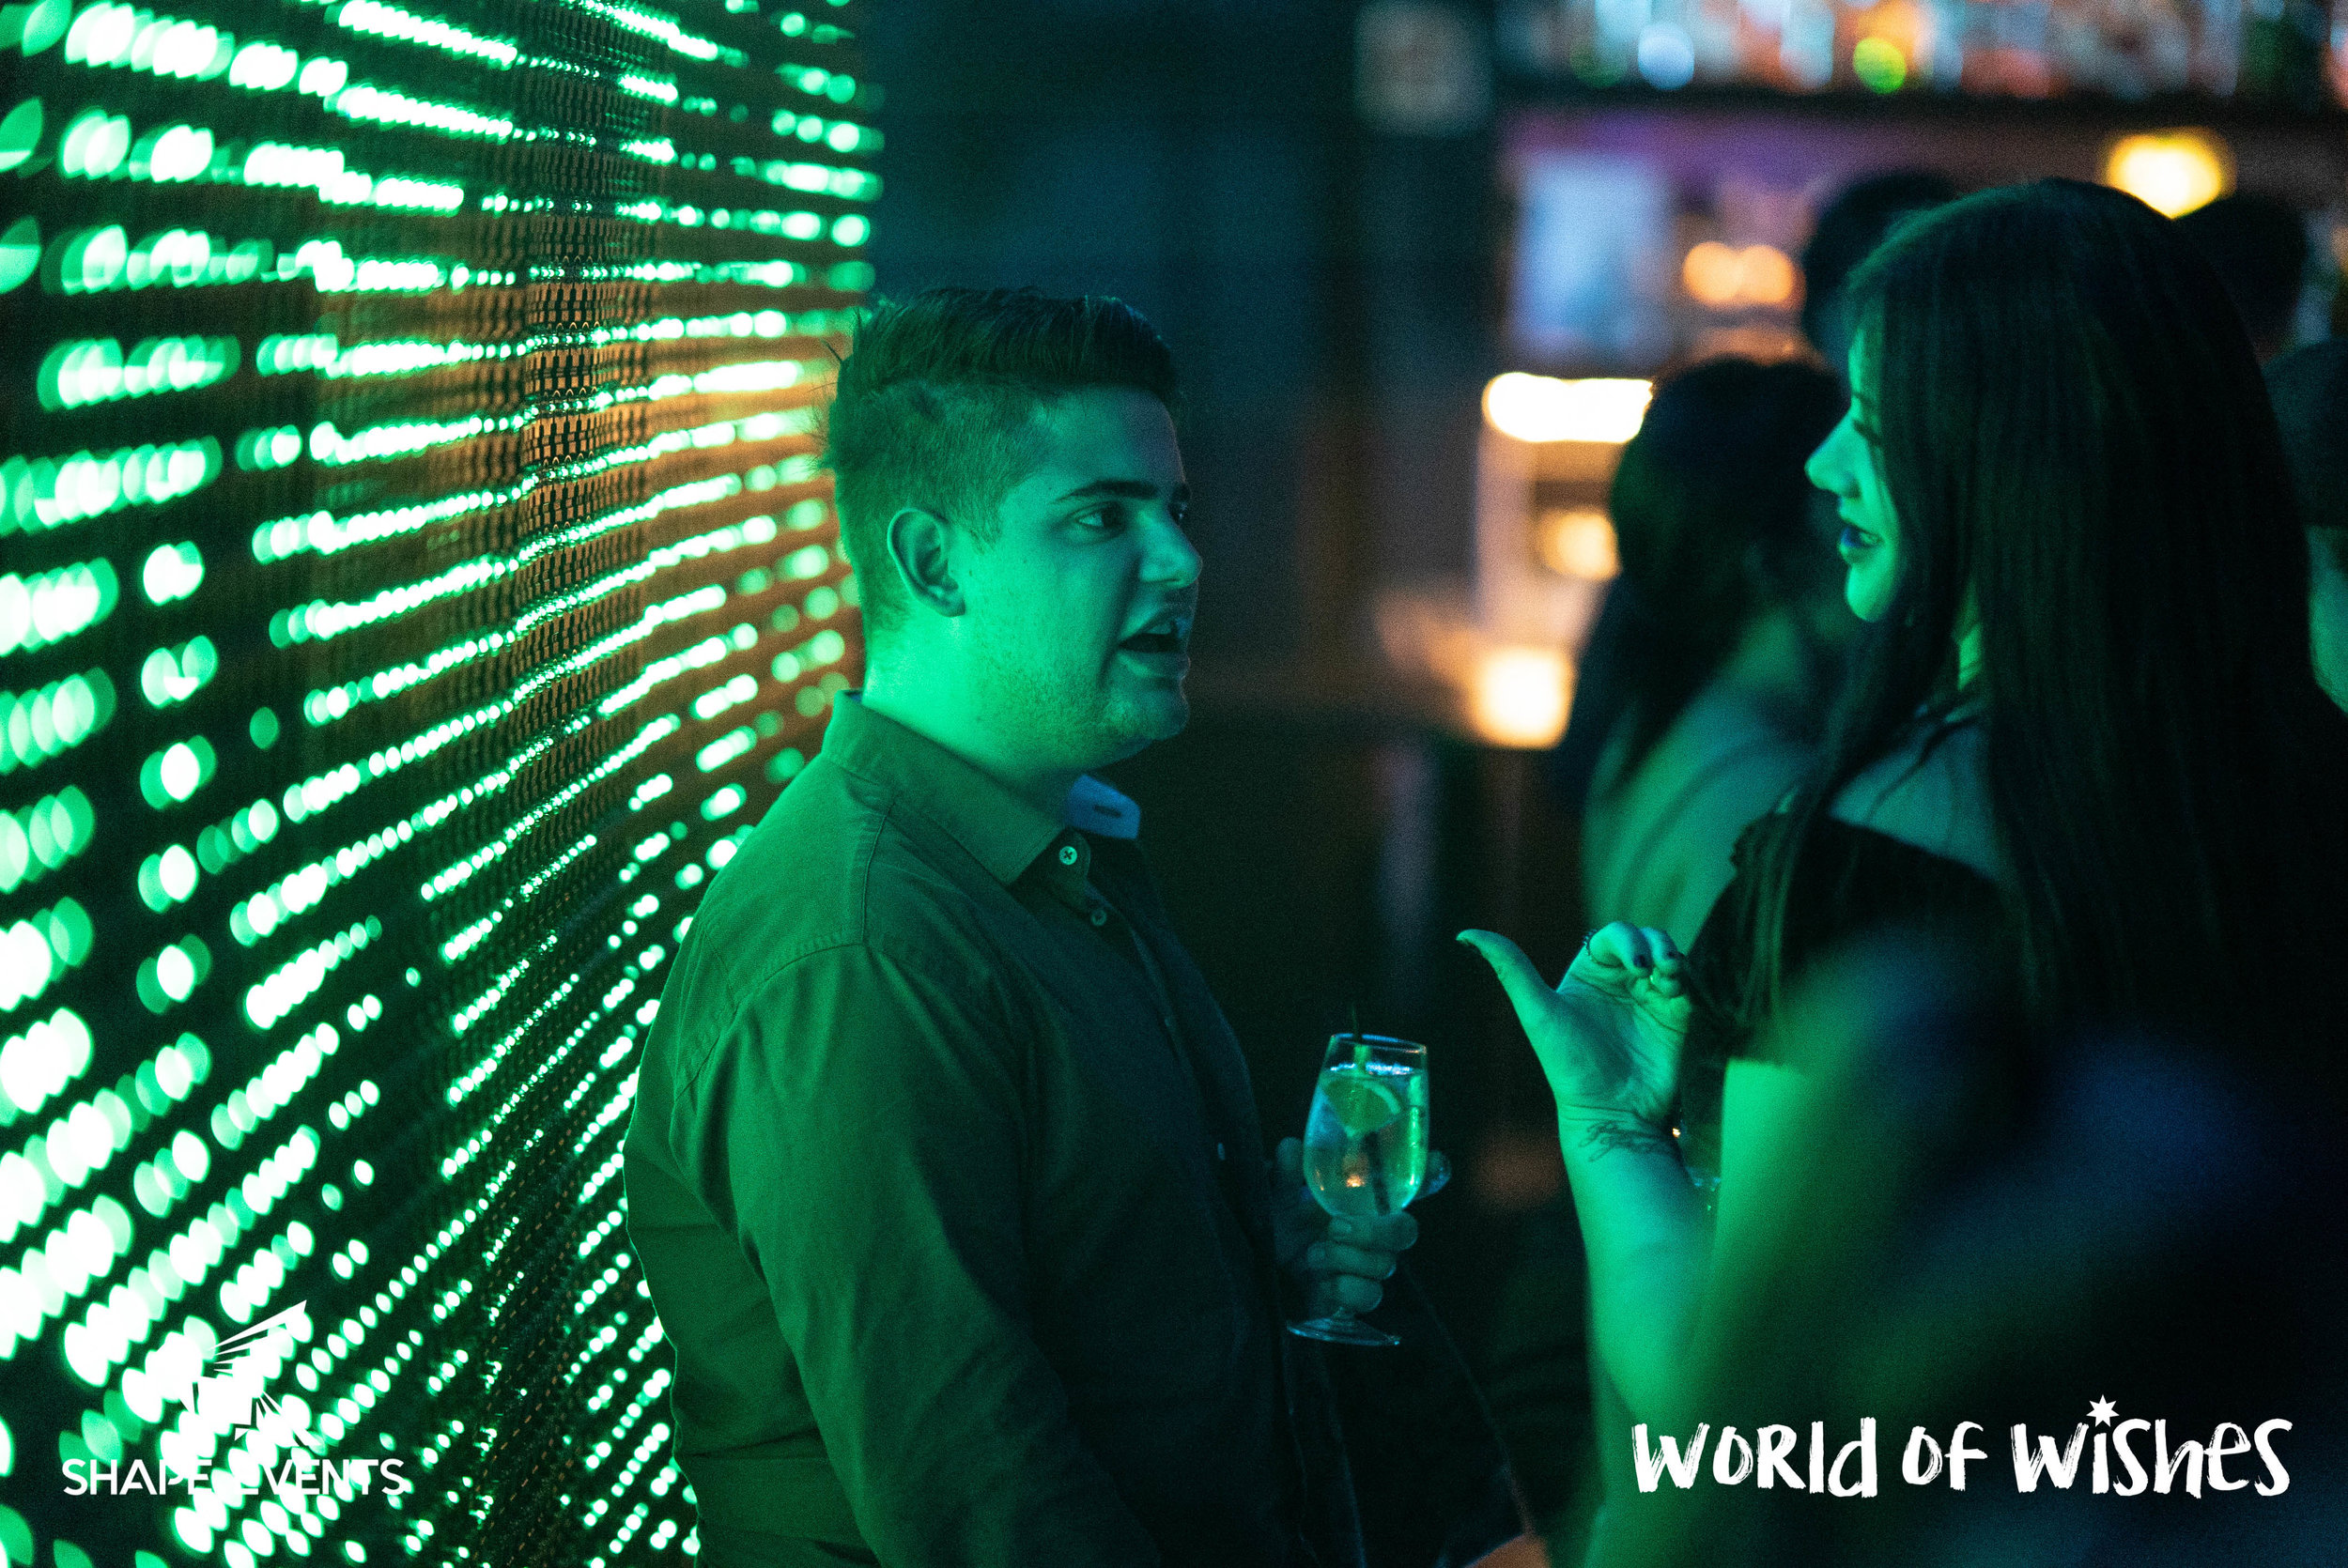 WordOfWishes_Party_Guest-01978.jpg